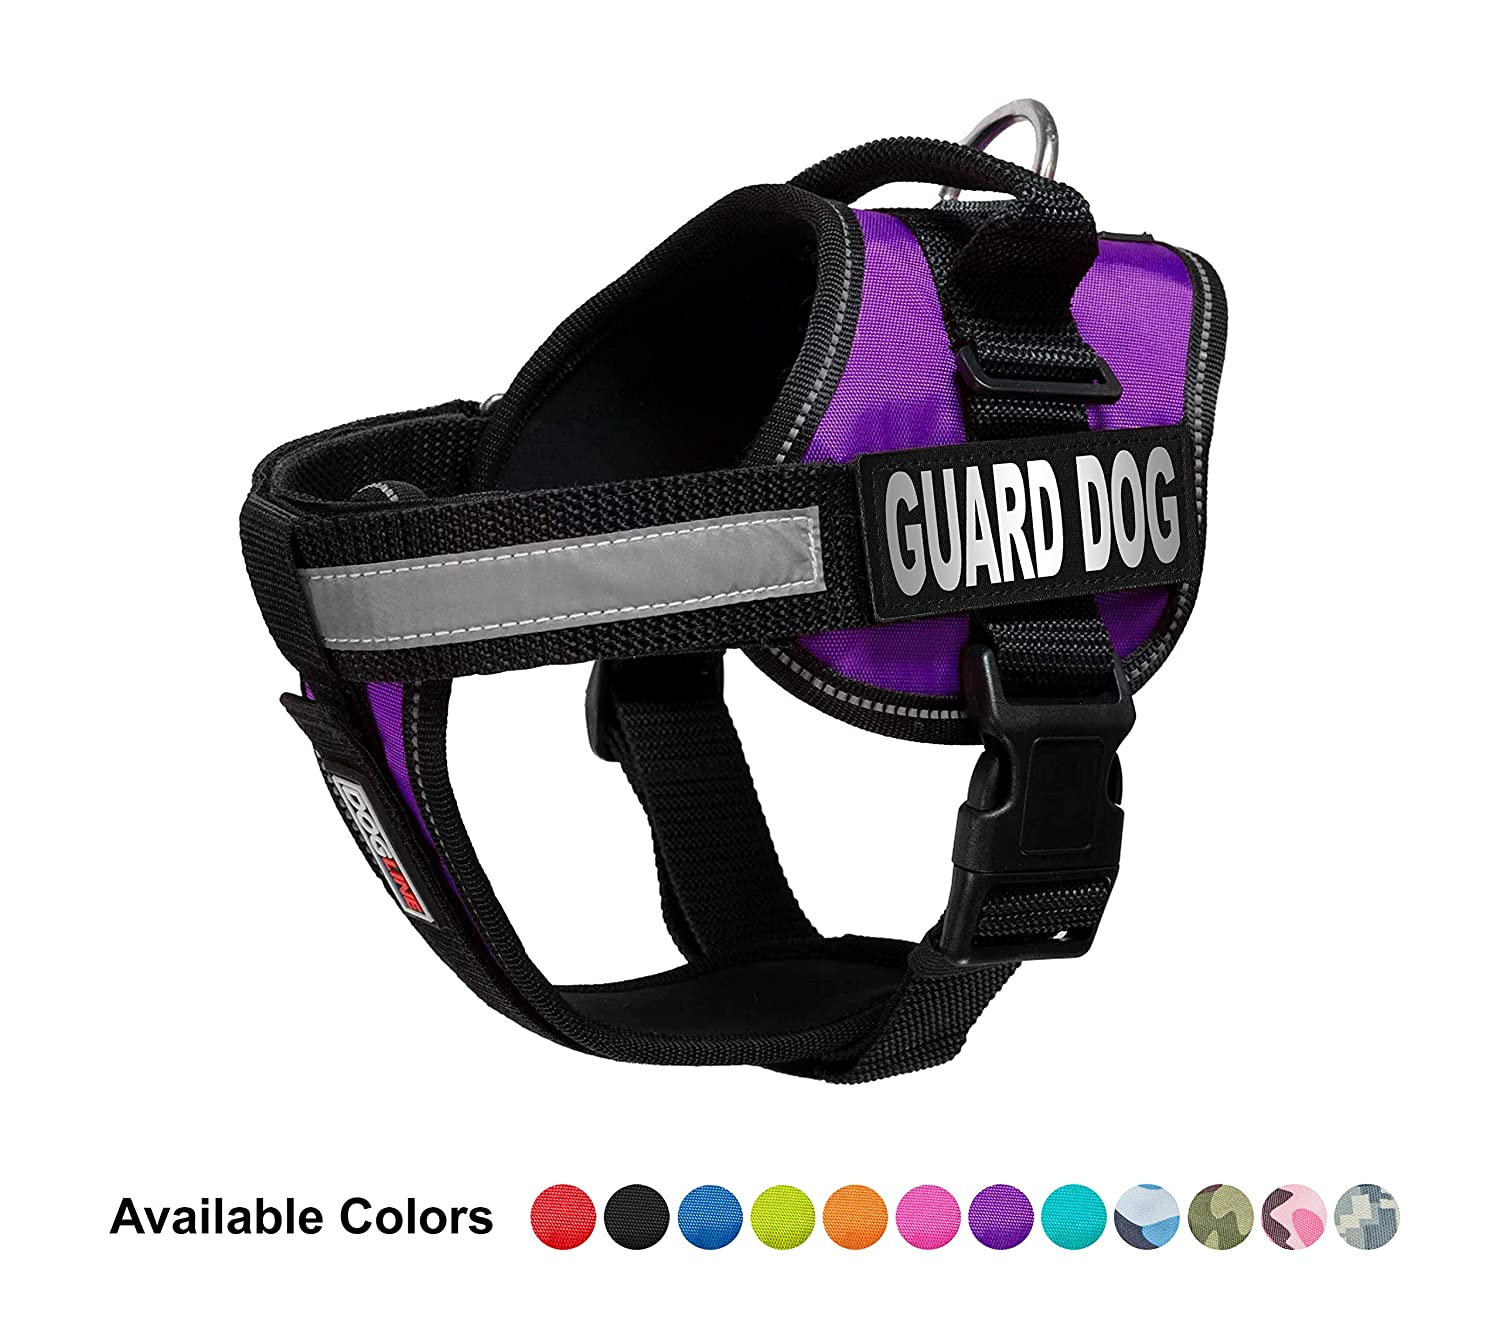 Dogline Unimax Multi-Purpose Vest Harness for Dogs and 2 Removable Guard Dog Patches, X-Large, Purple